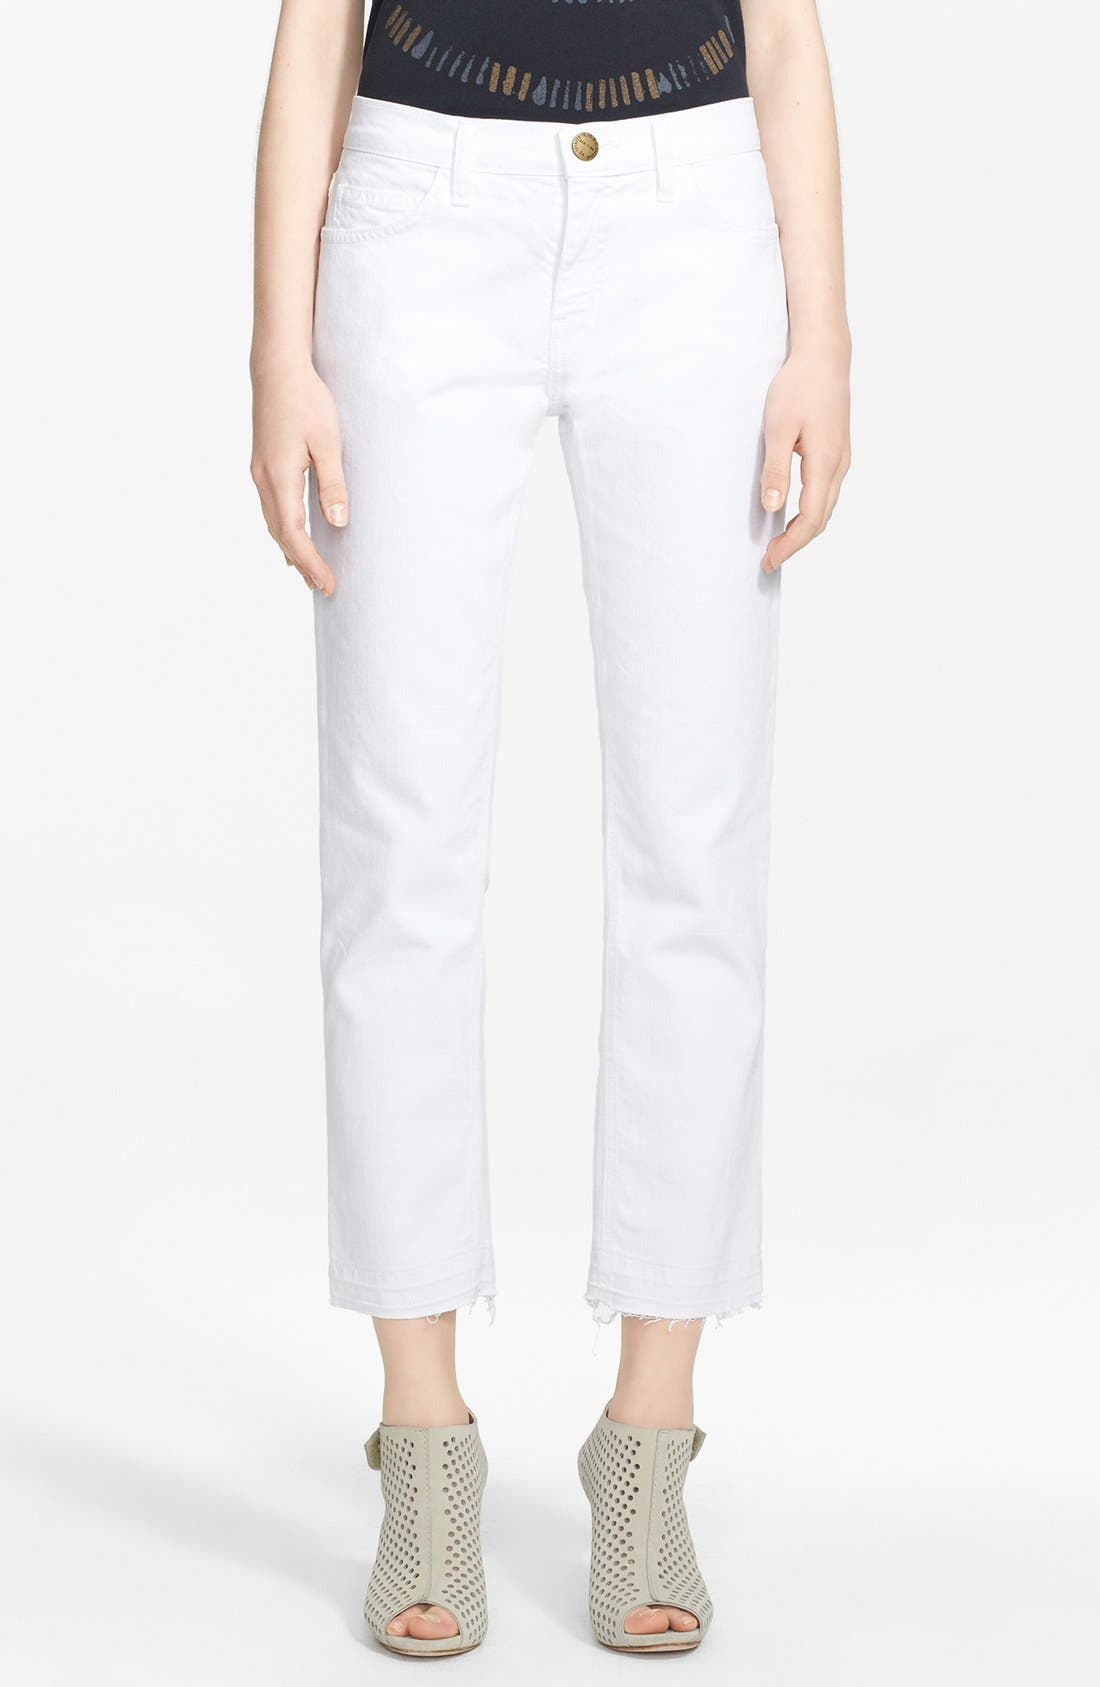 CURRENT/ELLIOTT, 'The Cropped Straight' Straight Leg Crop Jeans, Main thumbnail 1, color, 131